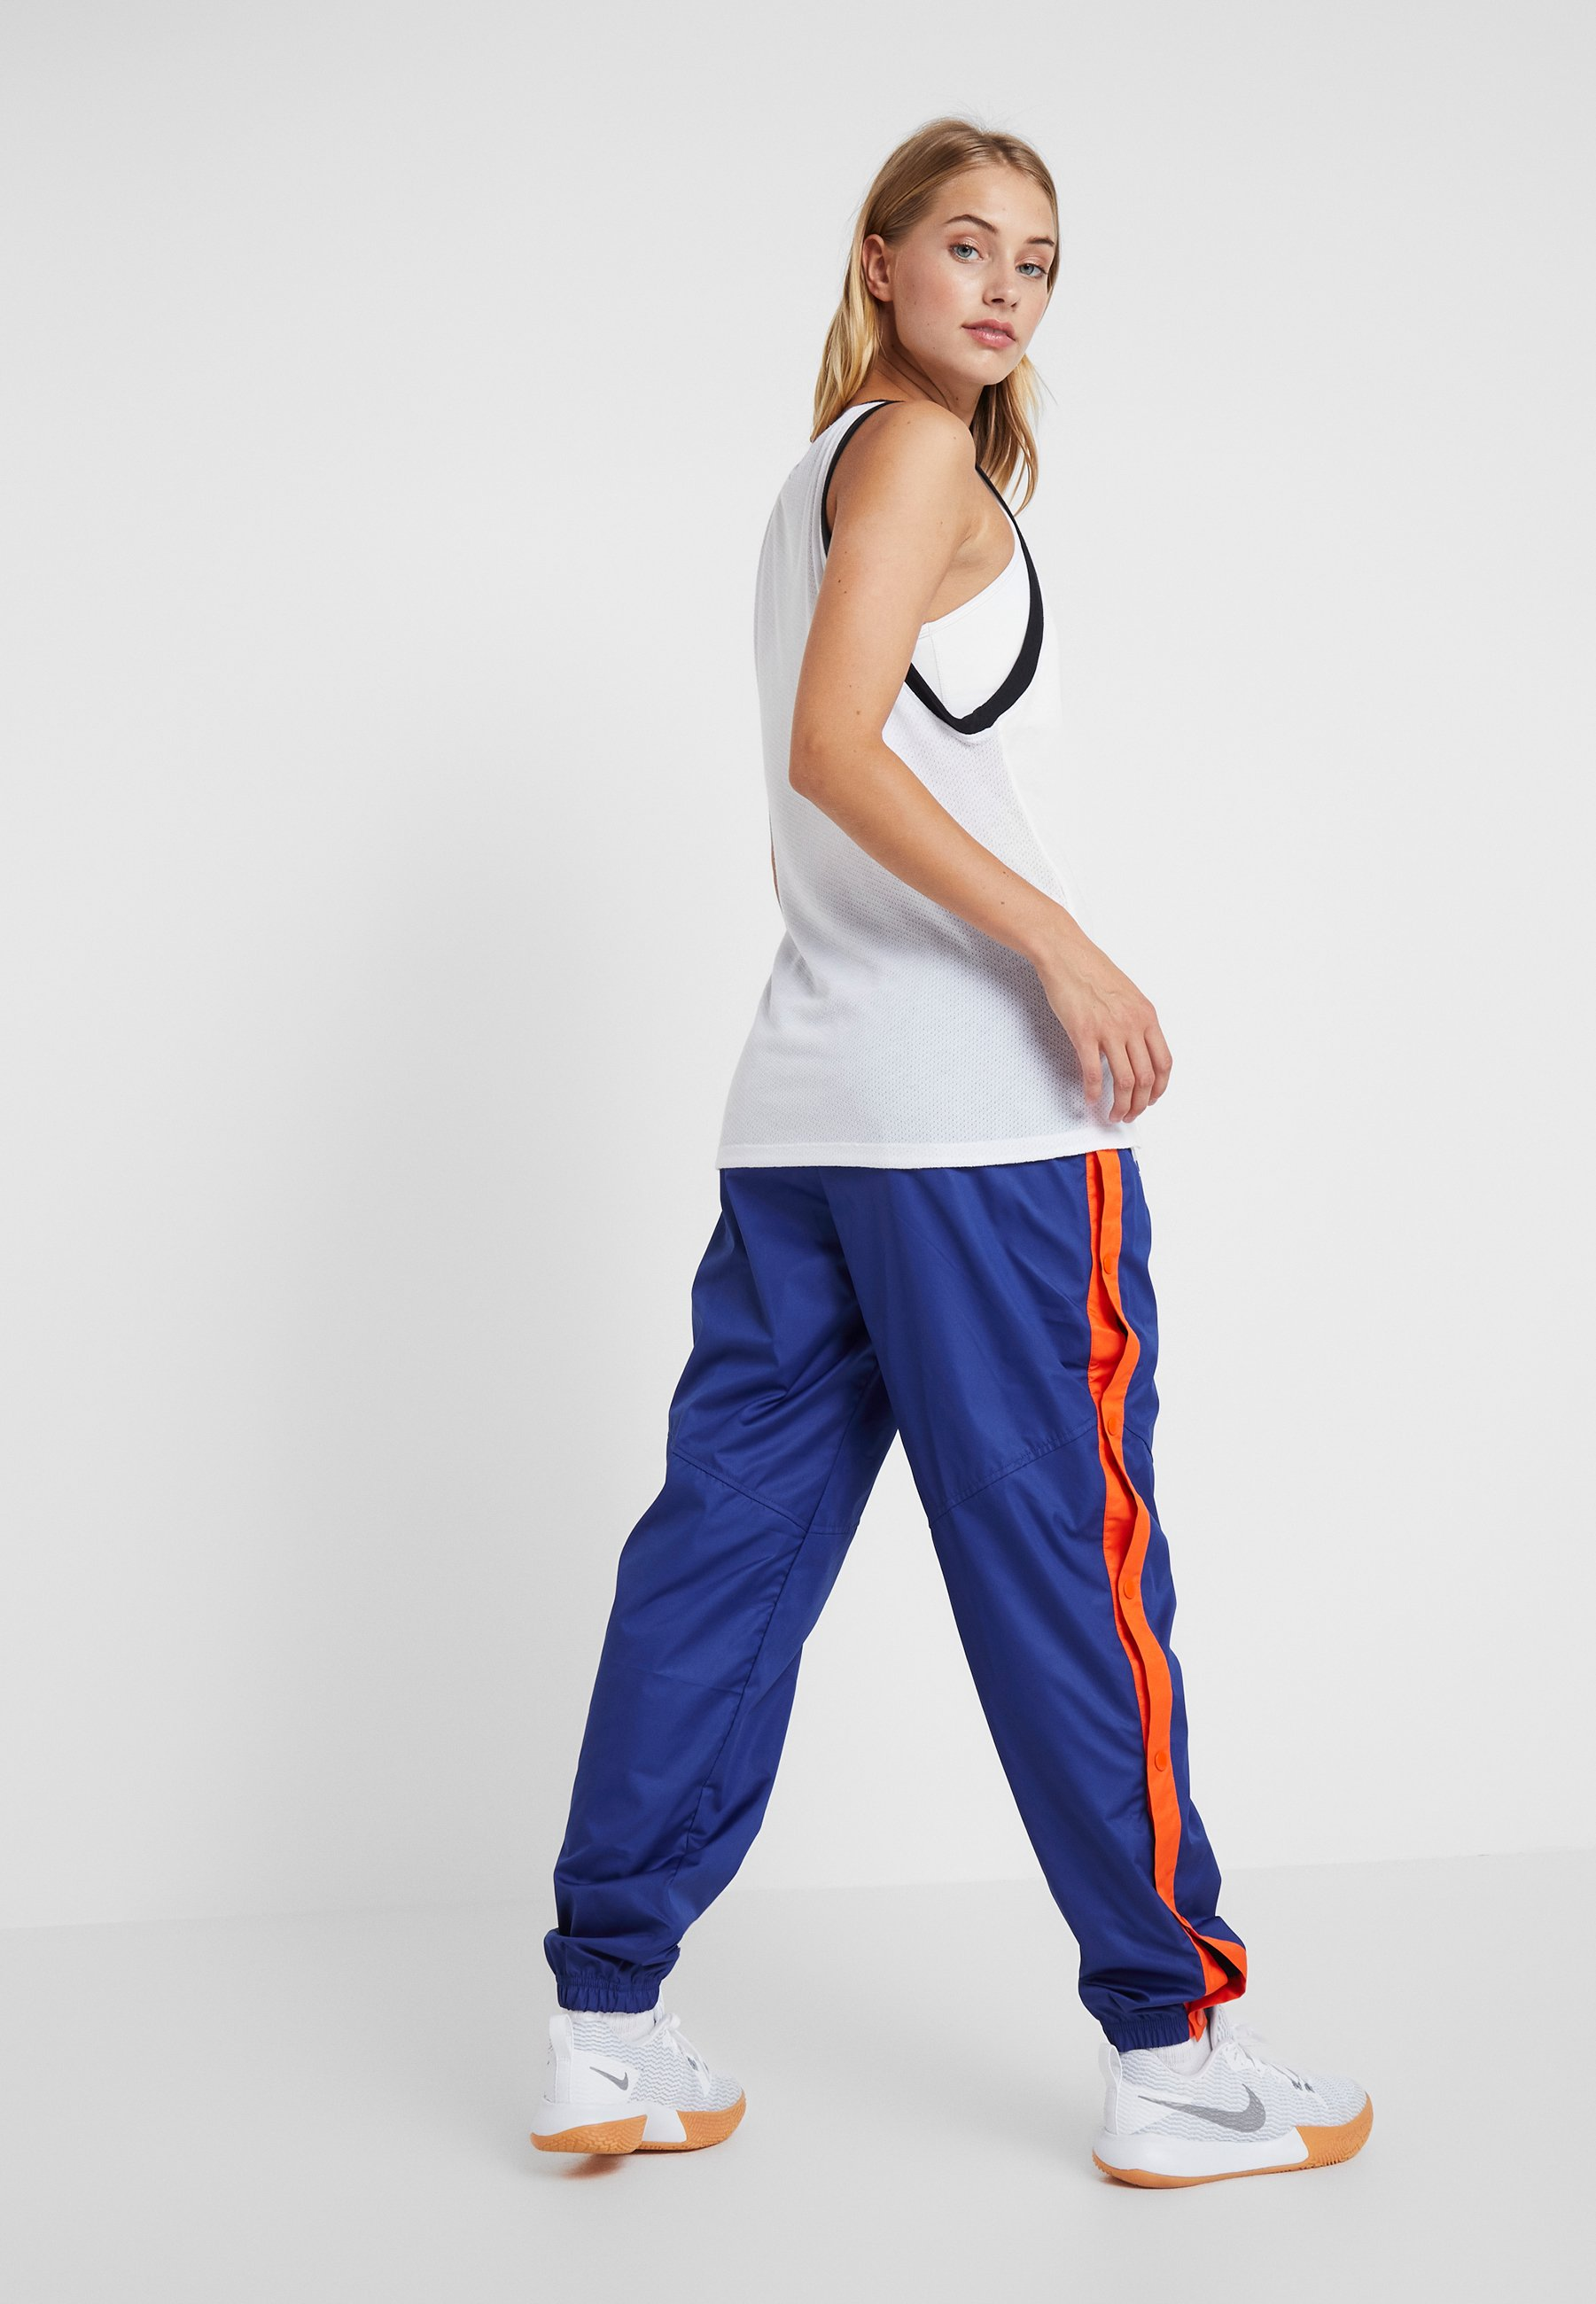 NBA NEW YORK KNICKS WOMENS SNAP PANT Article de supporter rush bluebrilliant ornge